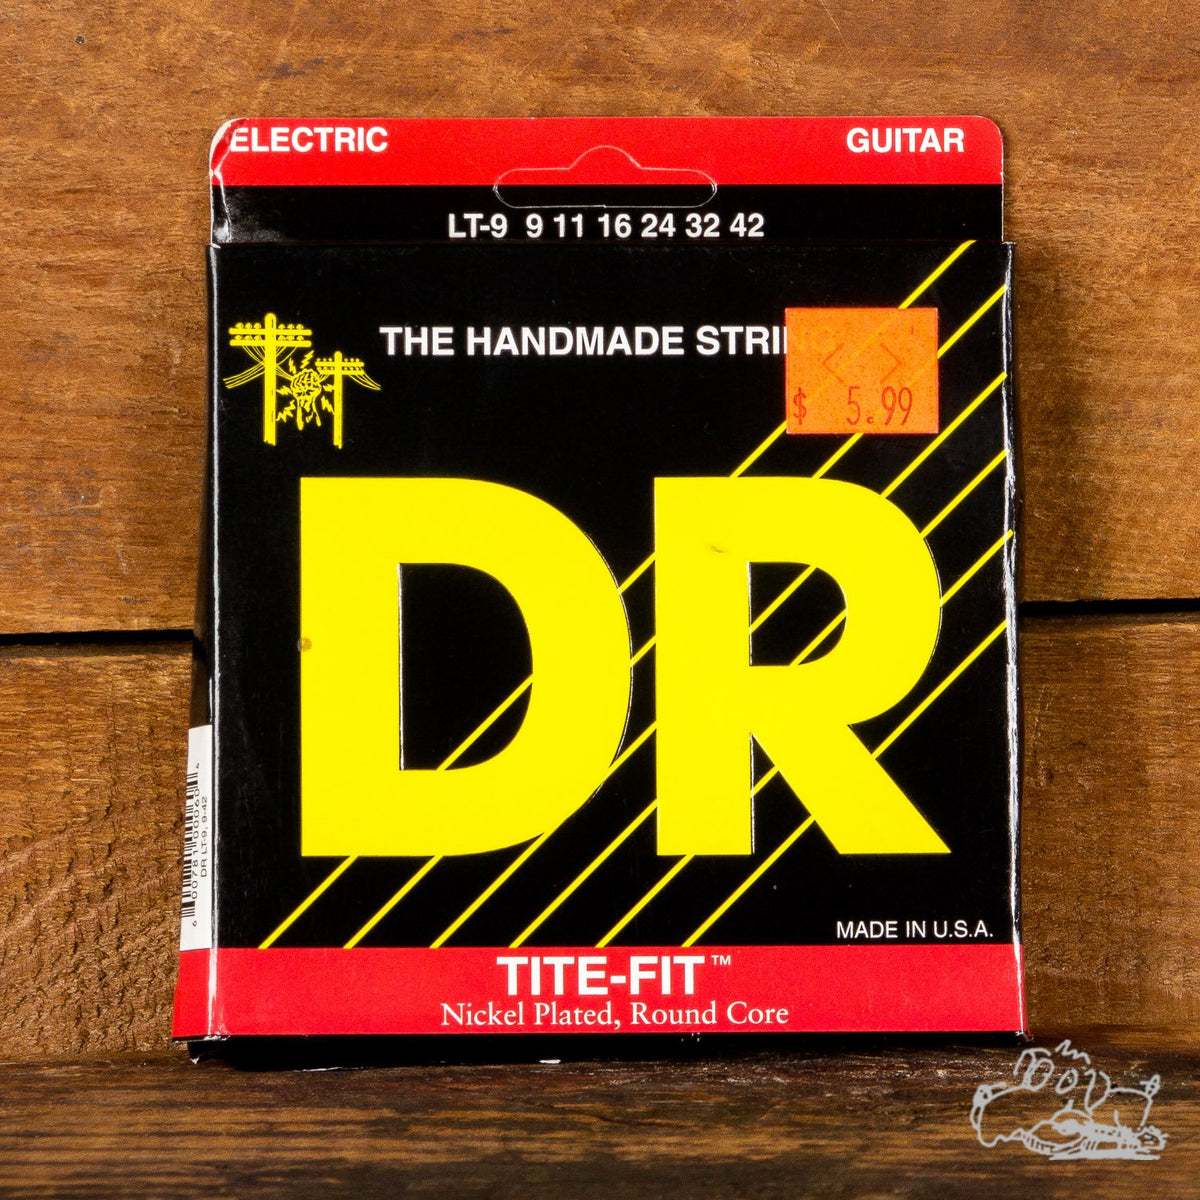 DR Tite-Fit Nickel Plated, Round Core 9-42 Light Electric Guitar Strings